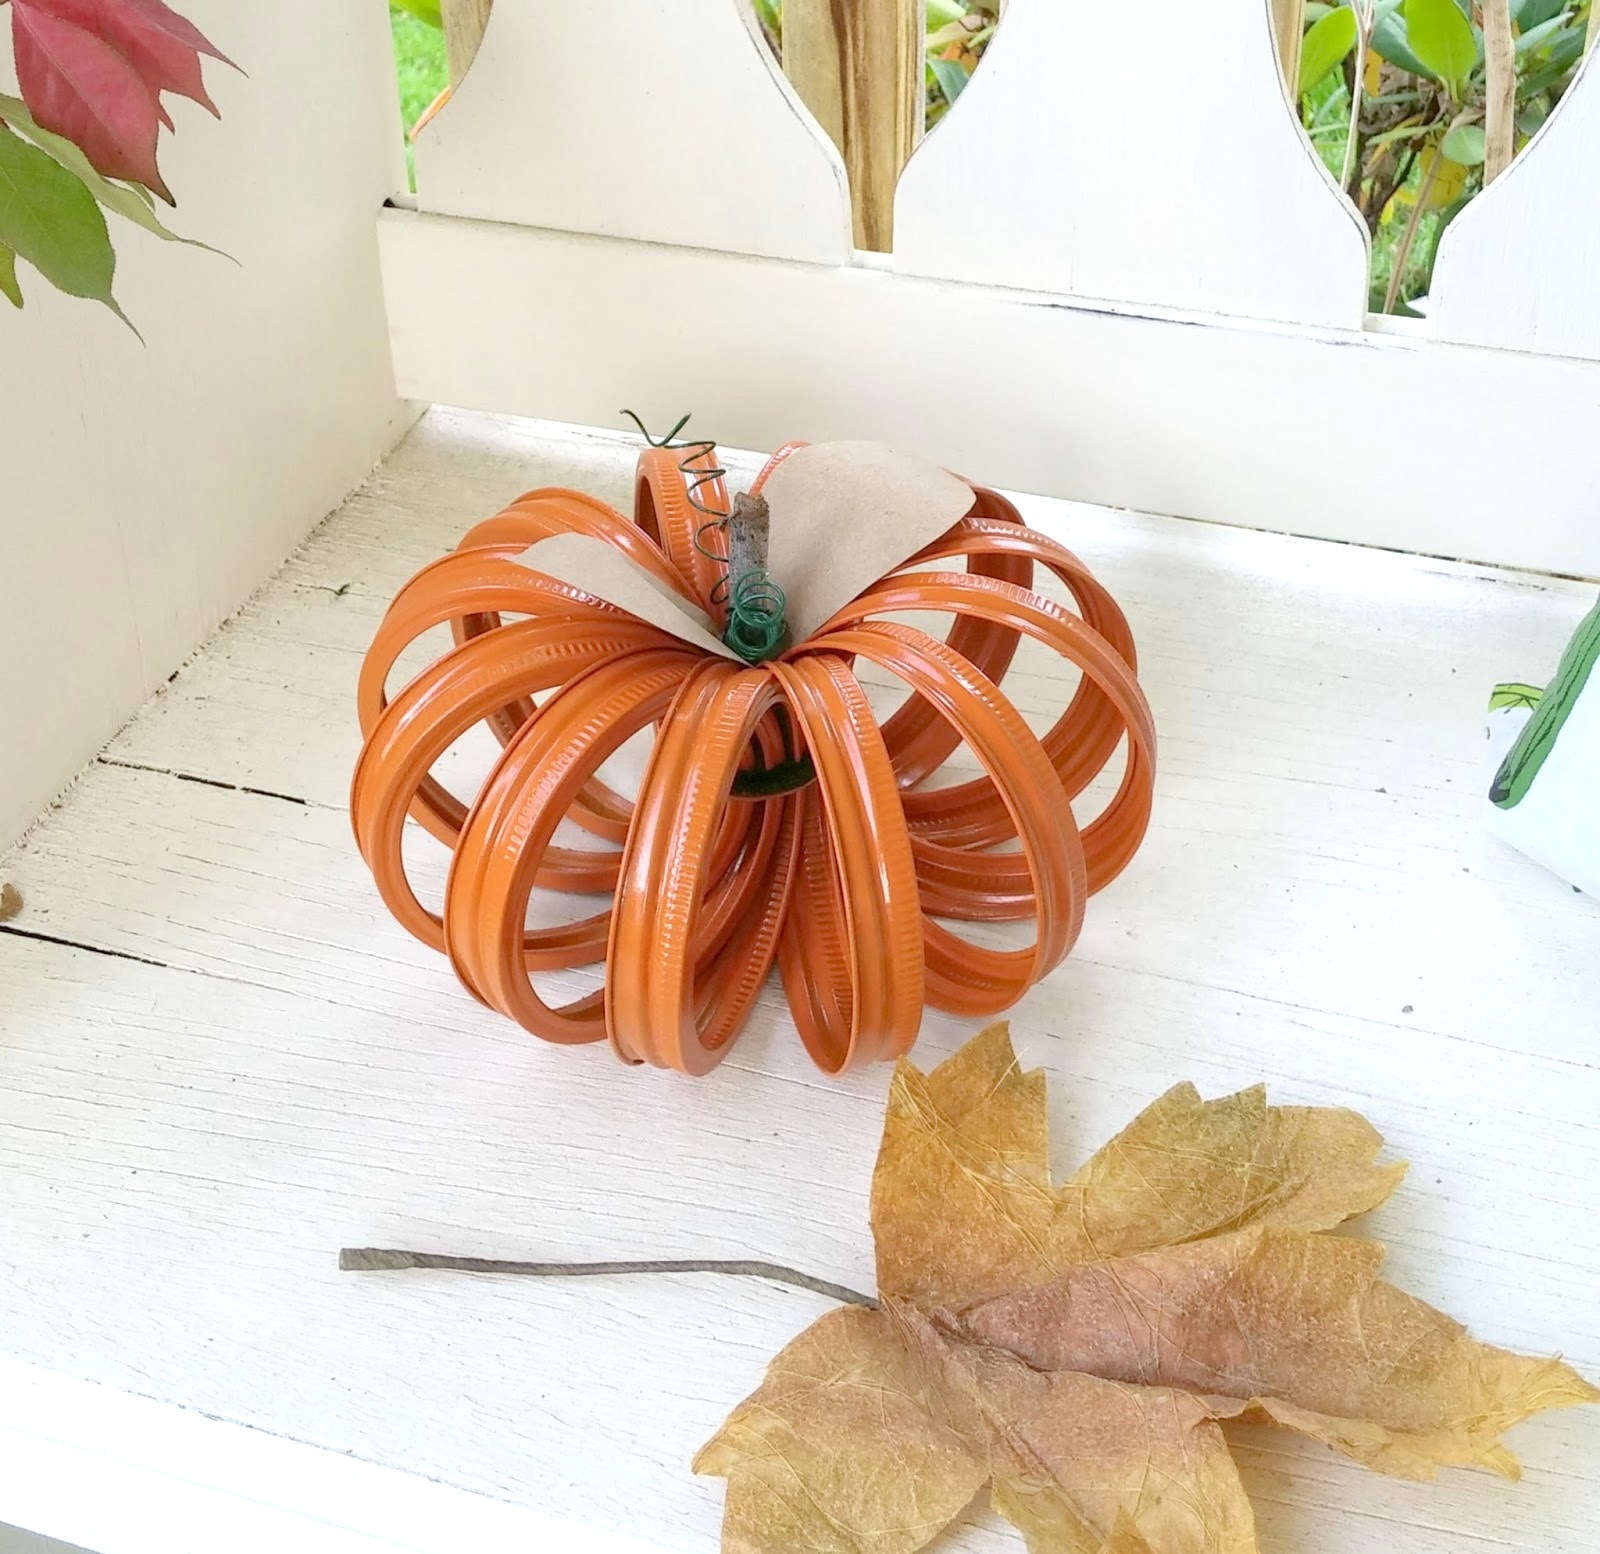 Canning jar ring fall pumpkin decor by Little Vintage Cottage , featured on Funky Junk Interiors